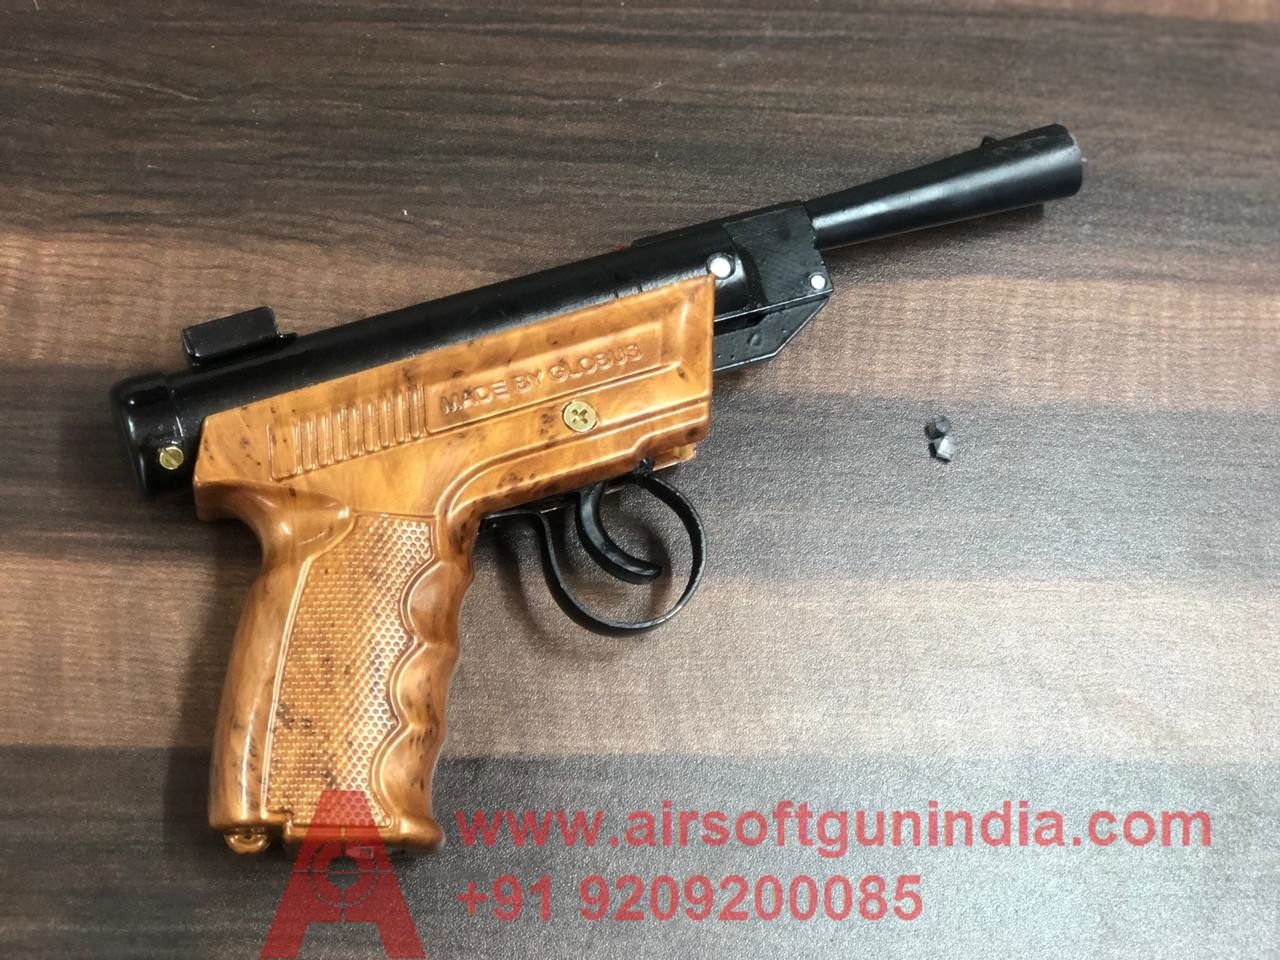 Power Sports Air Pistol By Airsoft Gun India Wooden Texture